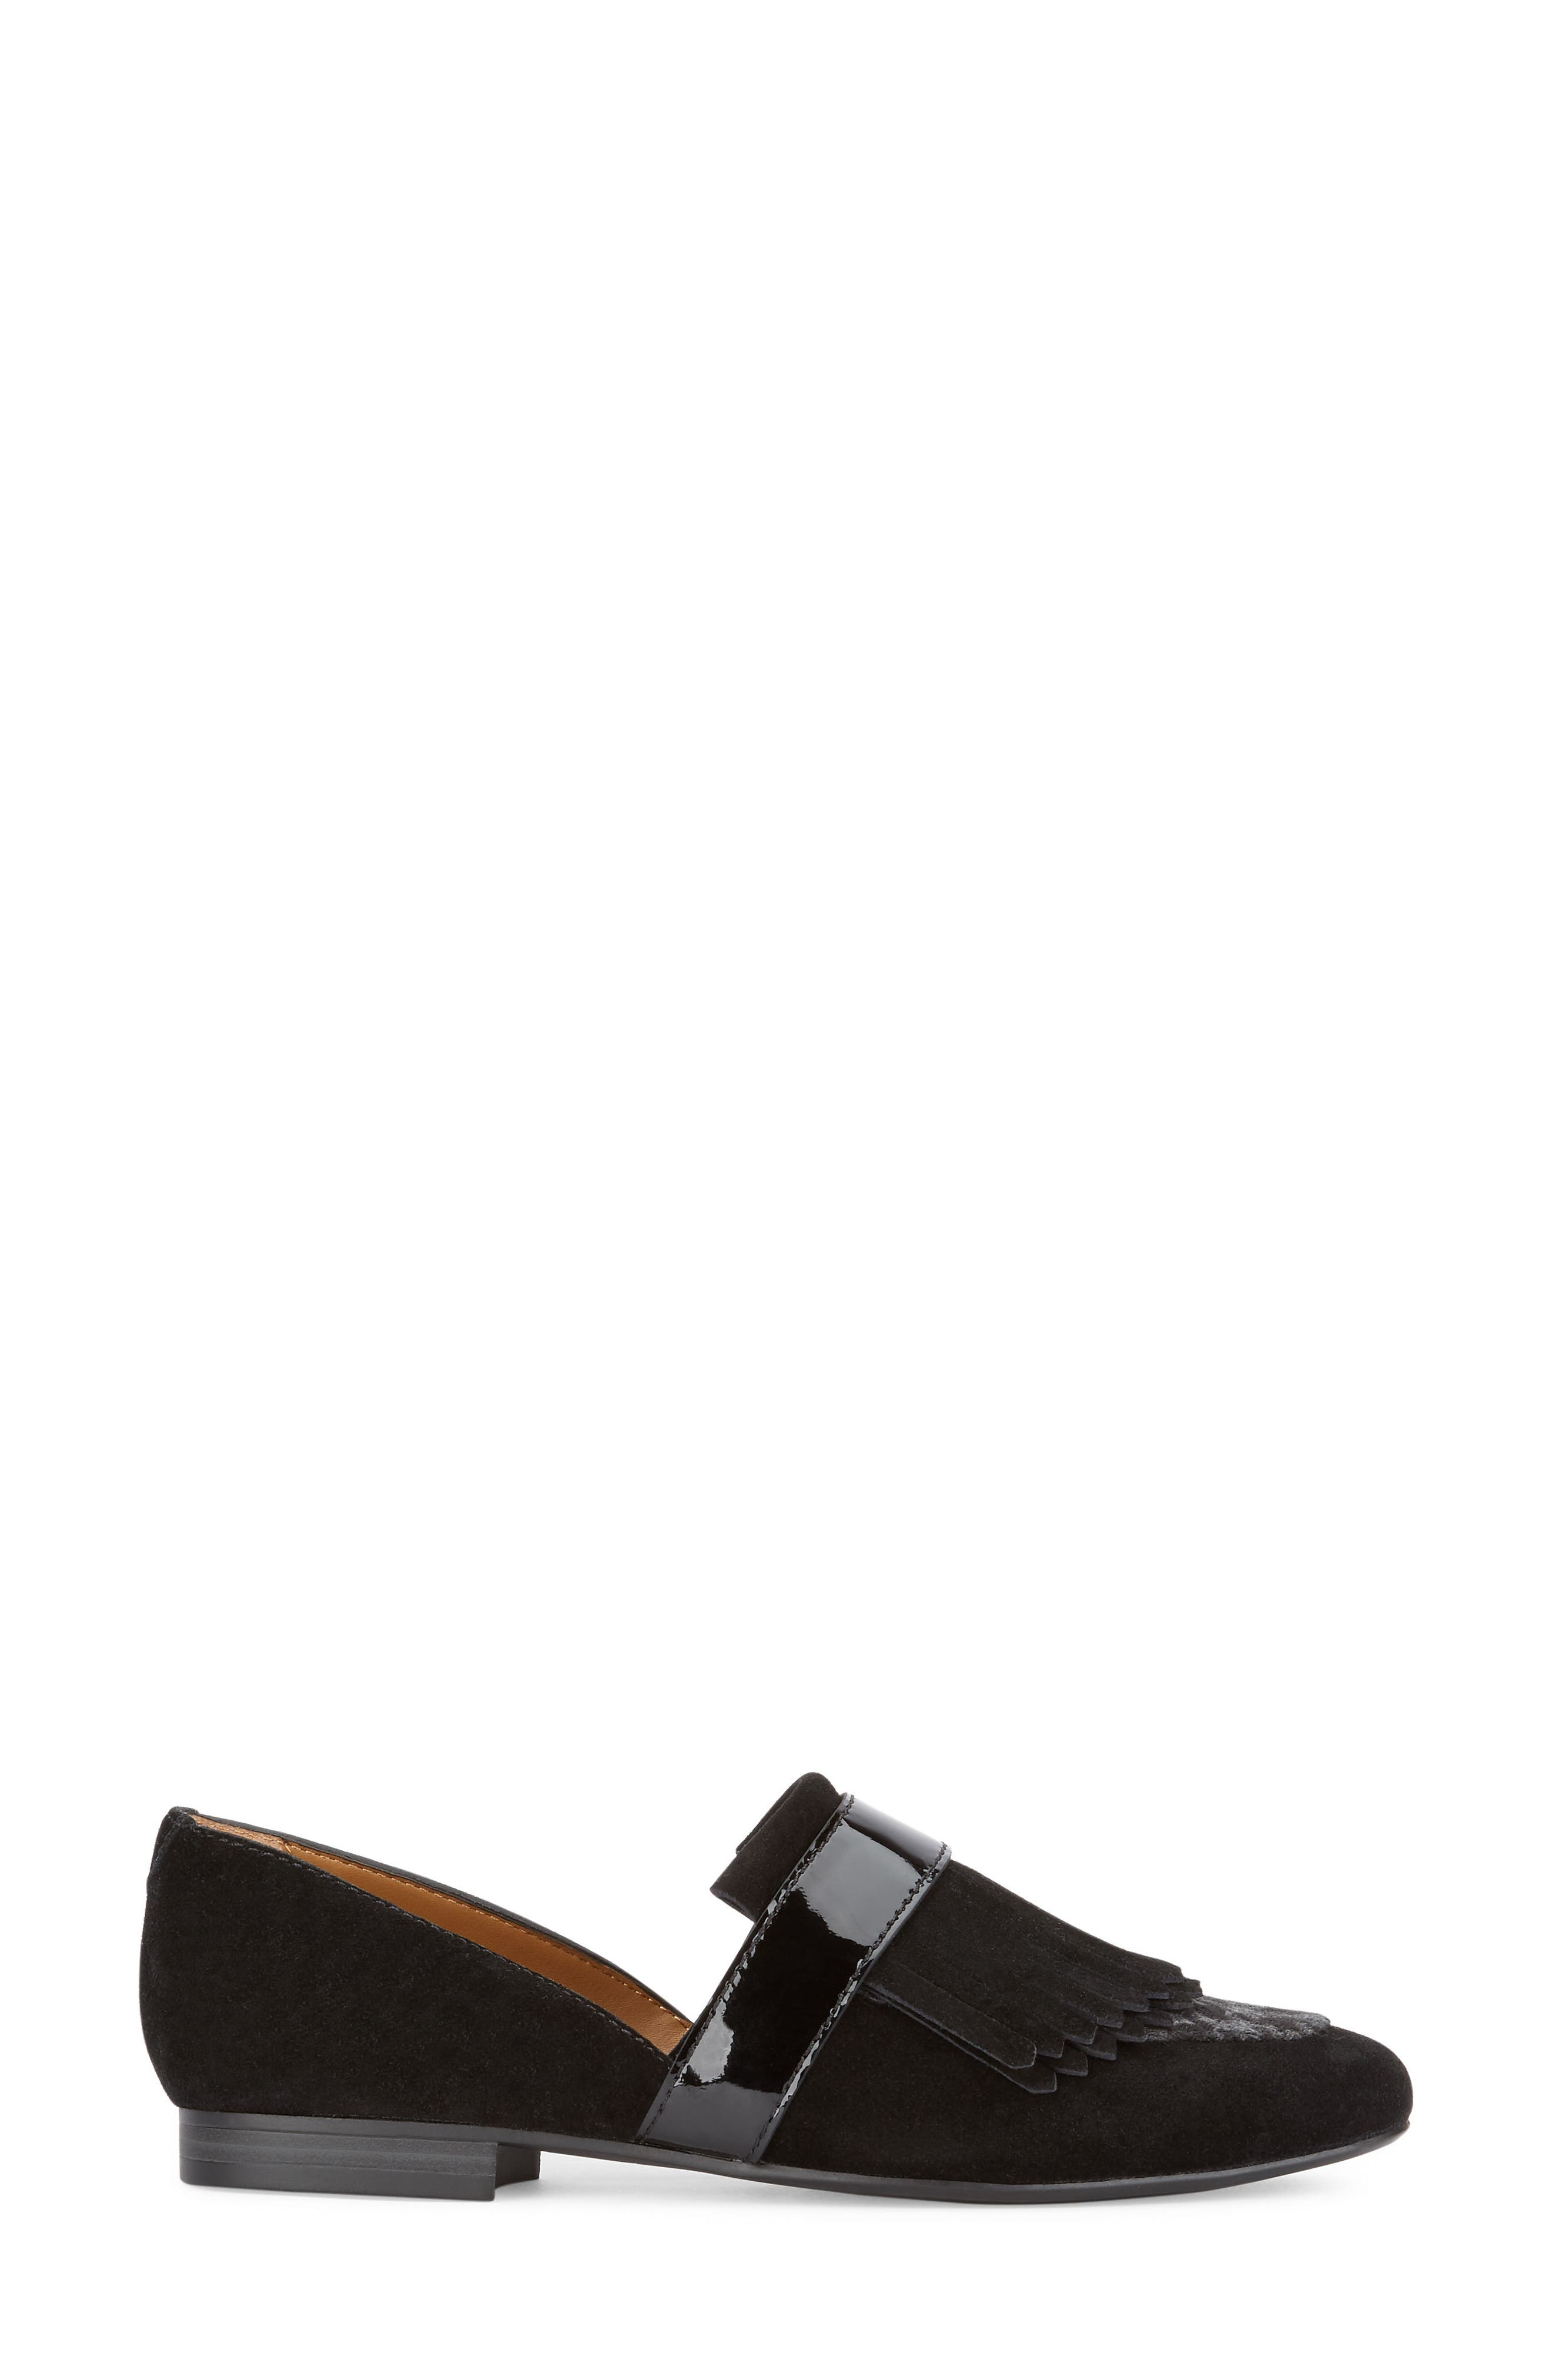 'Harlow' Kiltie Leather Loafer,                             Alternate thumbnail 2, color,                             002